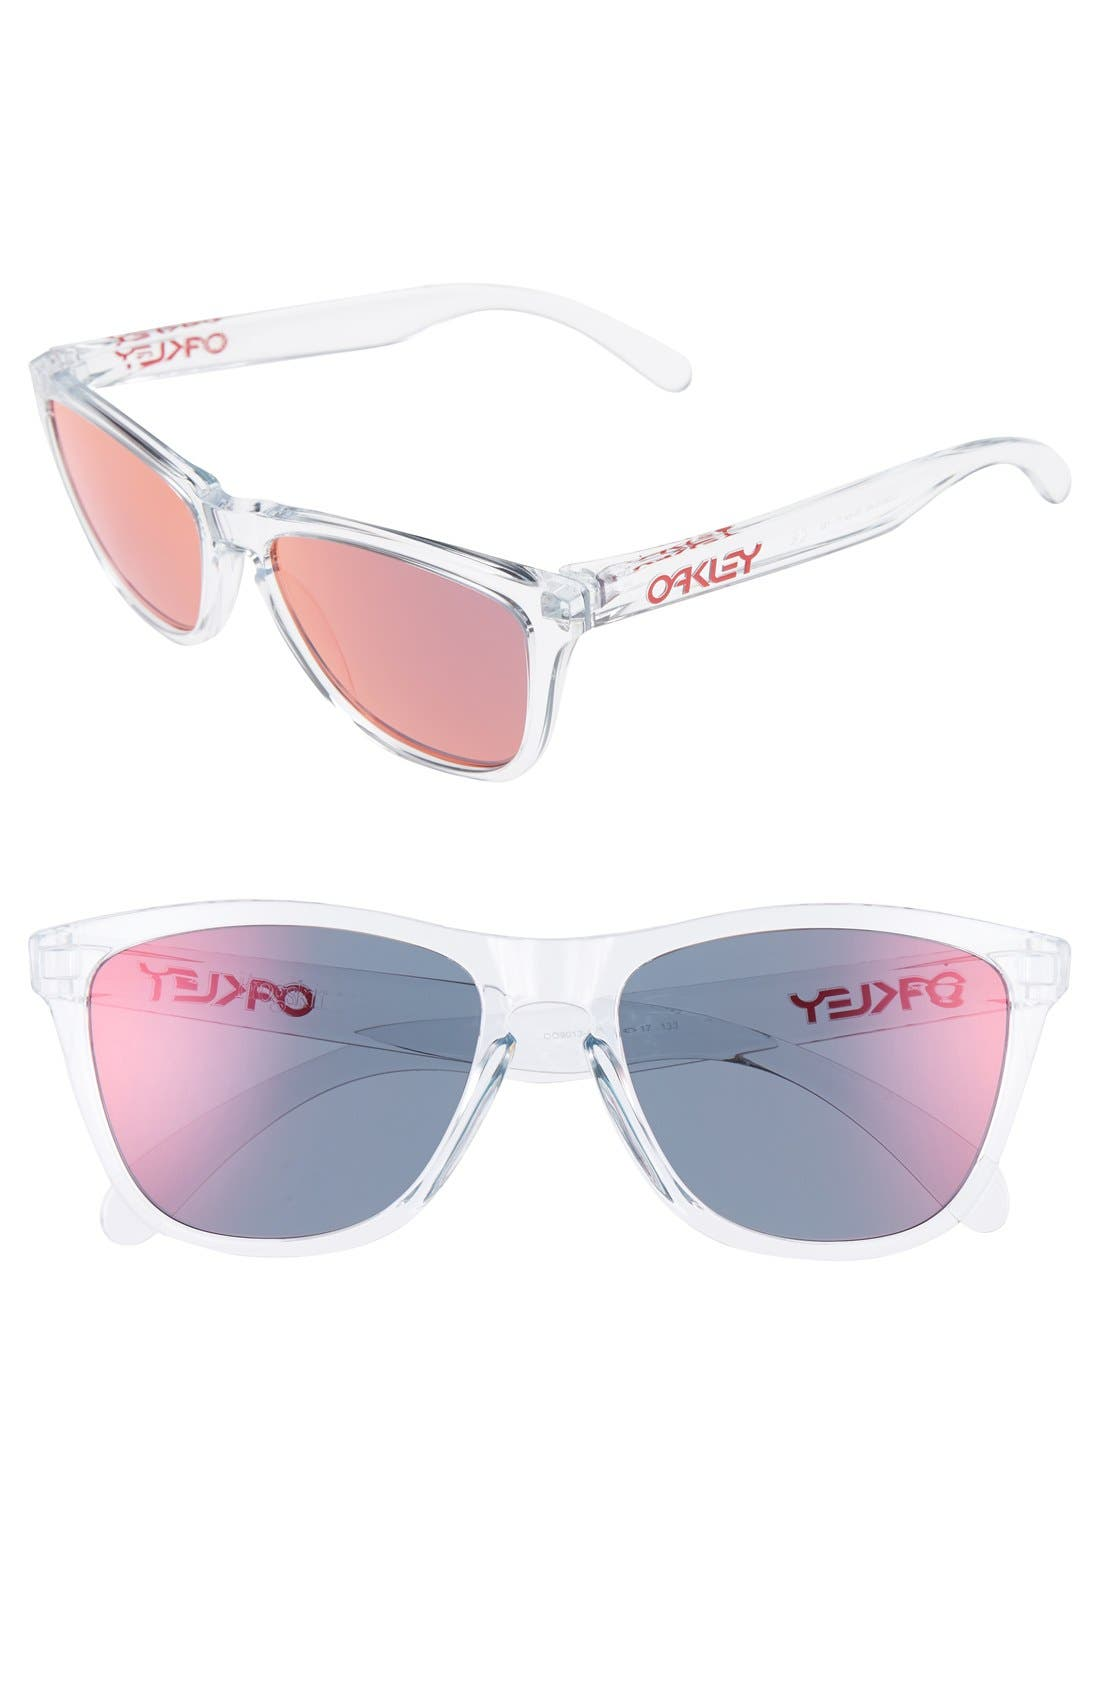 Frogskins<sup>®</sup> 55mm Sunglasses,                             Main thumbnail 1, color,                             Red